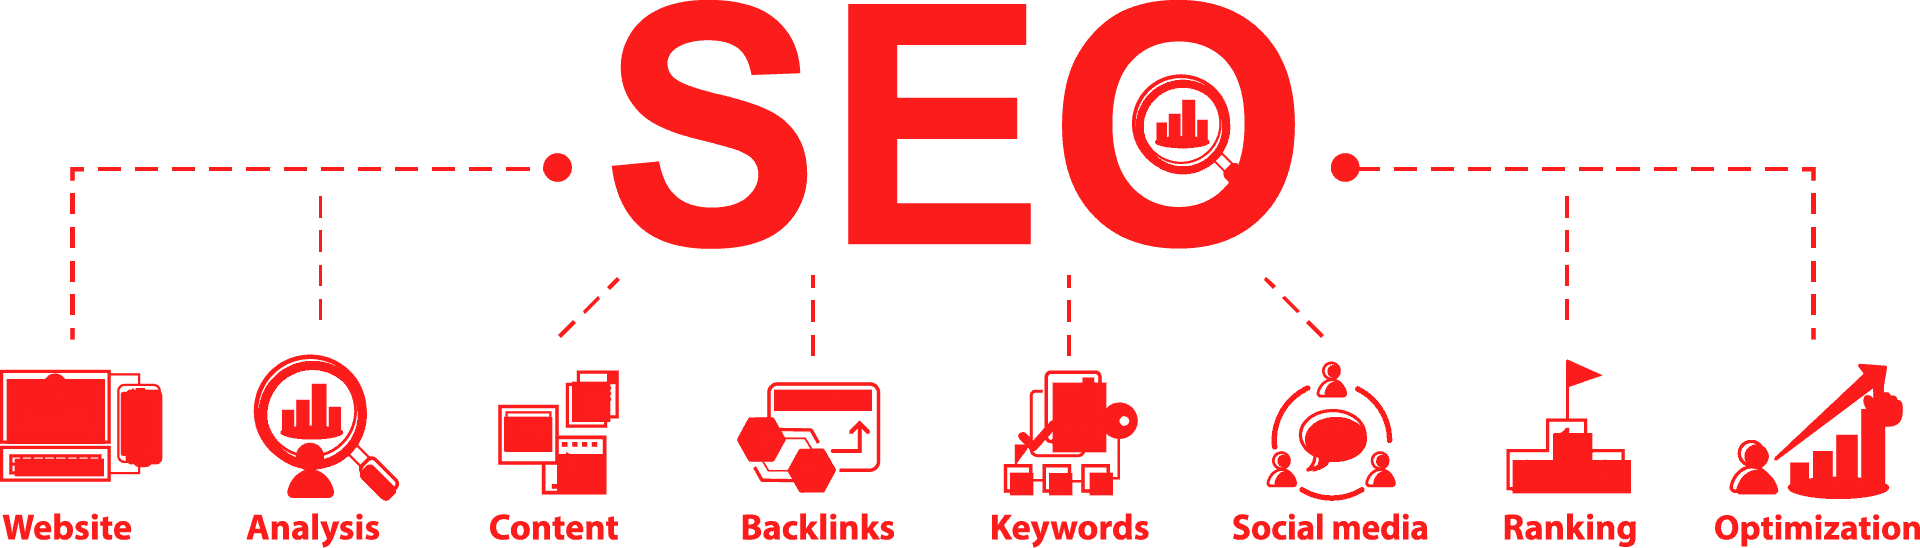 seo-banner-red